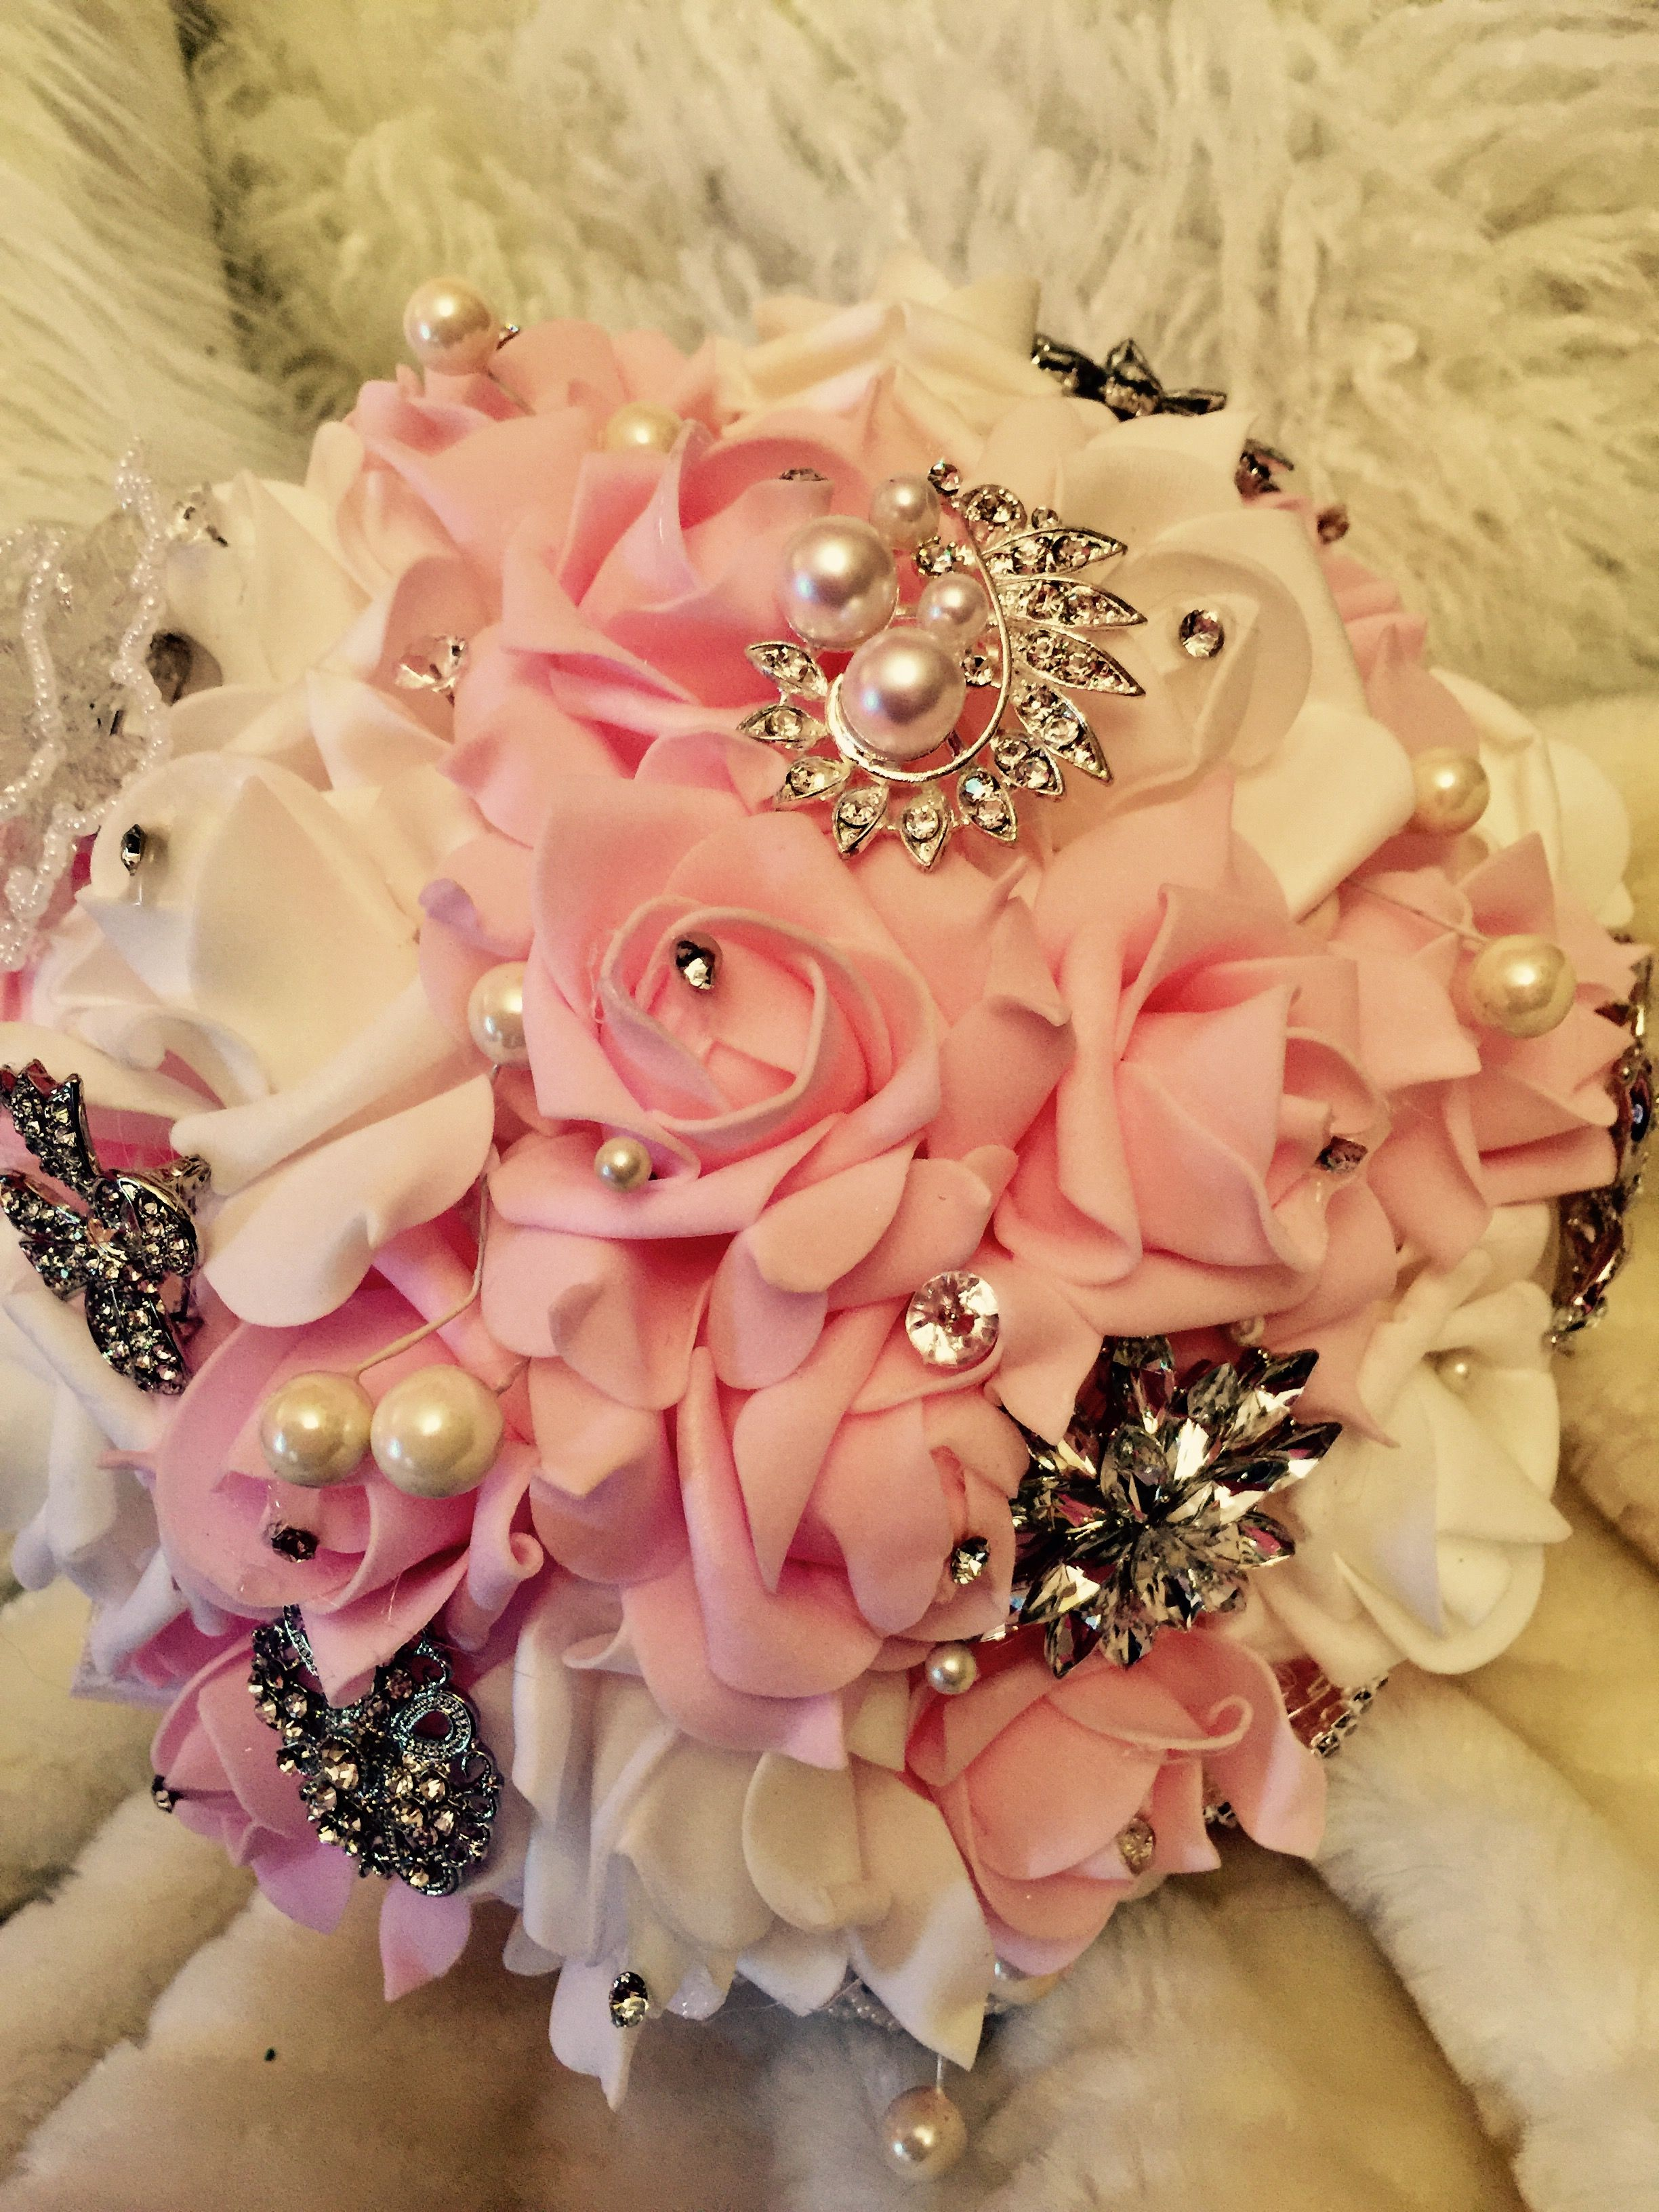 Brooch Bouquet With Real Touch Flowers In Pink And White Adorned